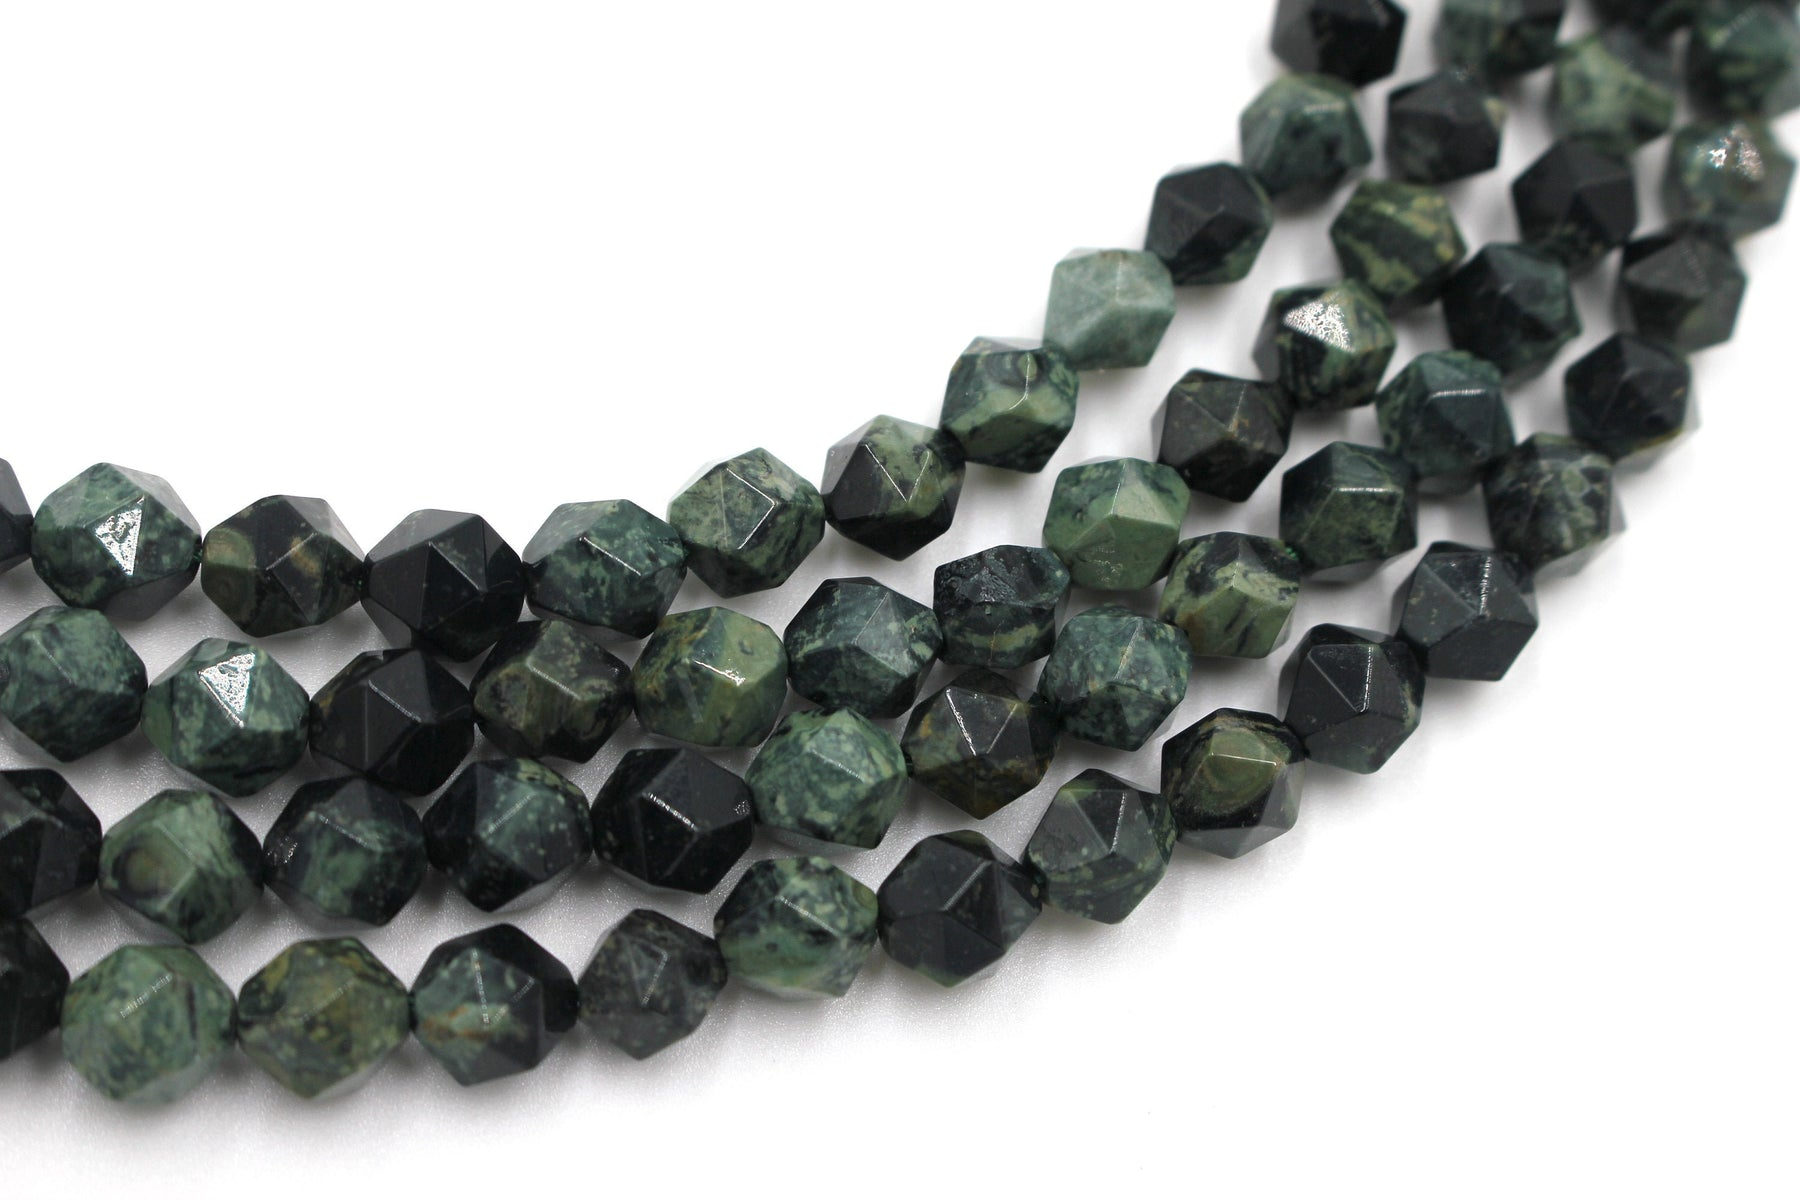 8mm green jasper, diamond beads, faceted beads, approx. 48 beads per strand.